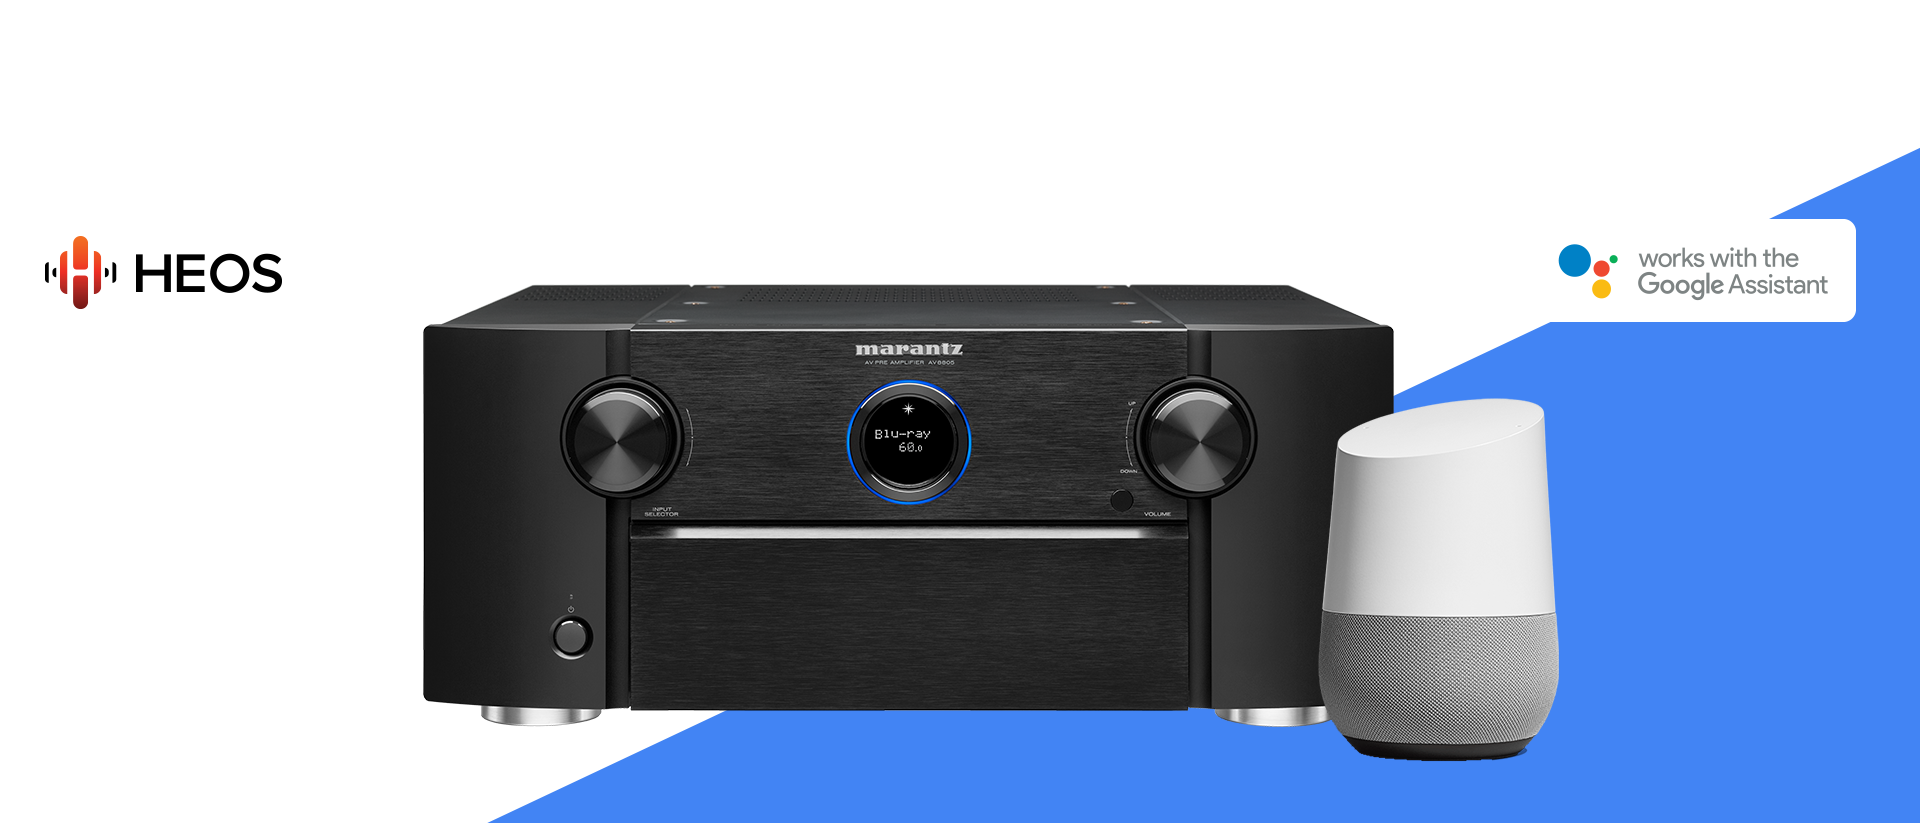 Marantz Works with the Google Assistant